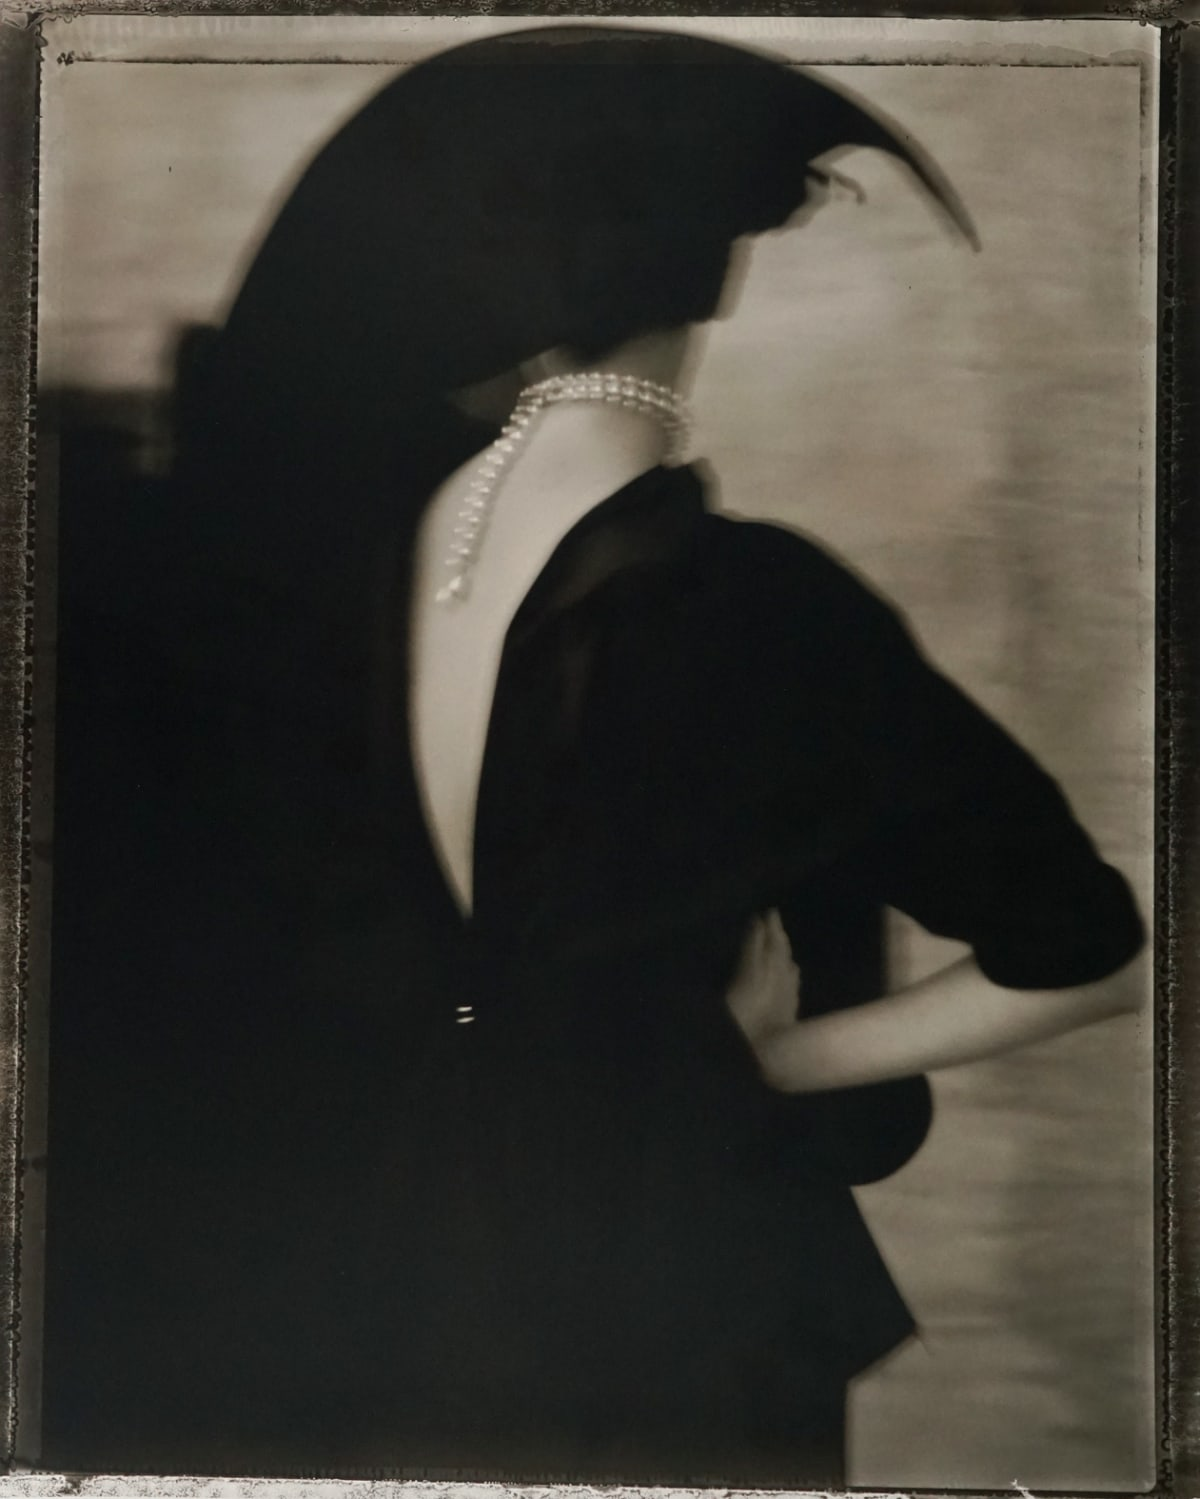 "Sarah Moon L'inconnue, 2011 Gelatin Silver Print Image - 17.5""x21.75"", Paper - 20""x24"", Matted - 24""x30"" Edition 9 of 20"